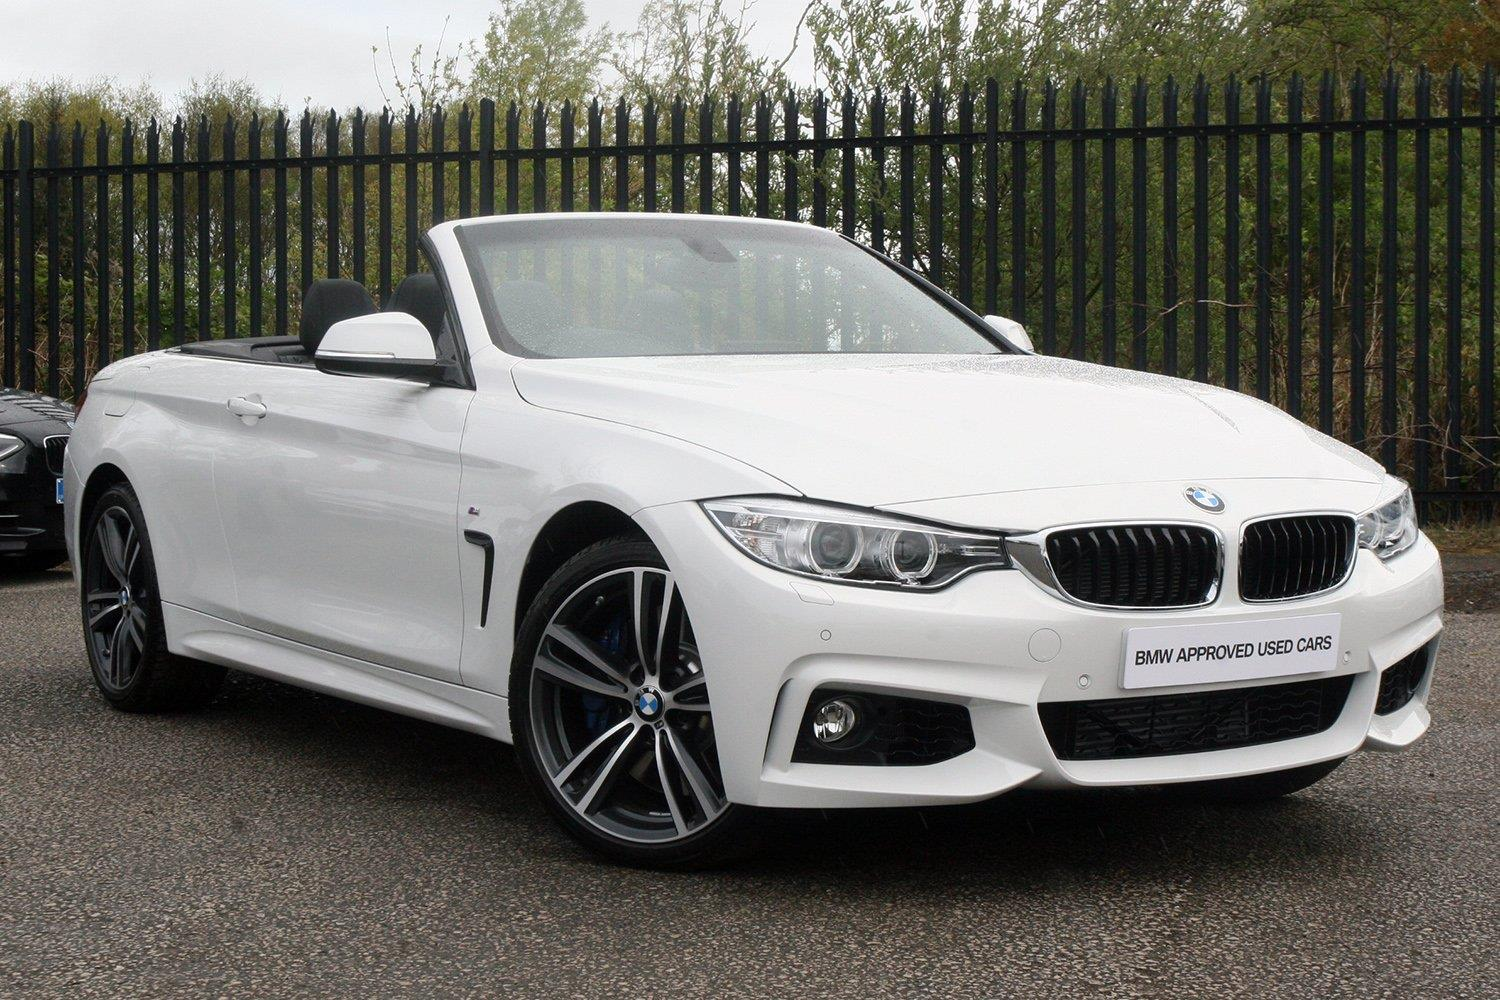 BMW 4 Series Convertible MF17YTC - Image 6